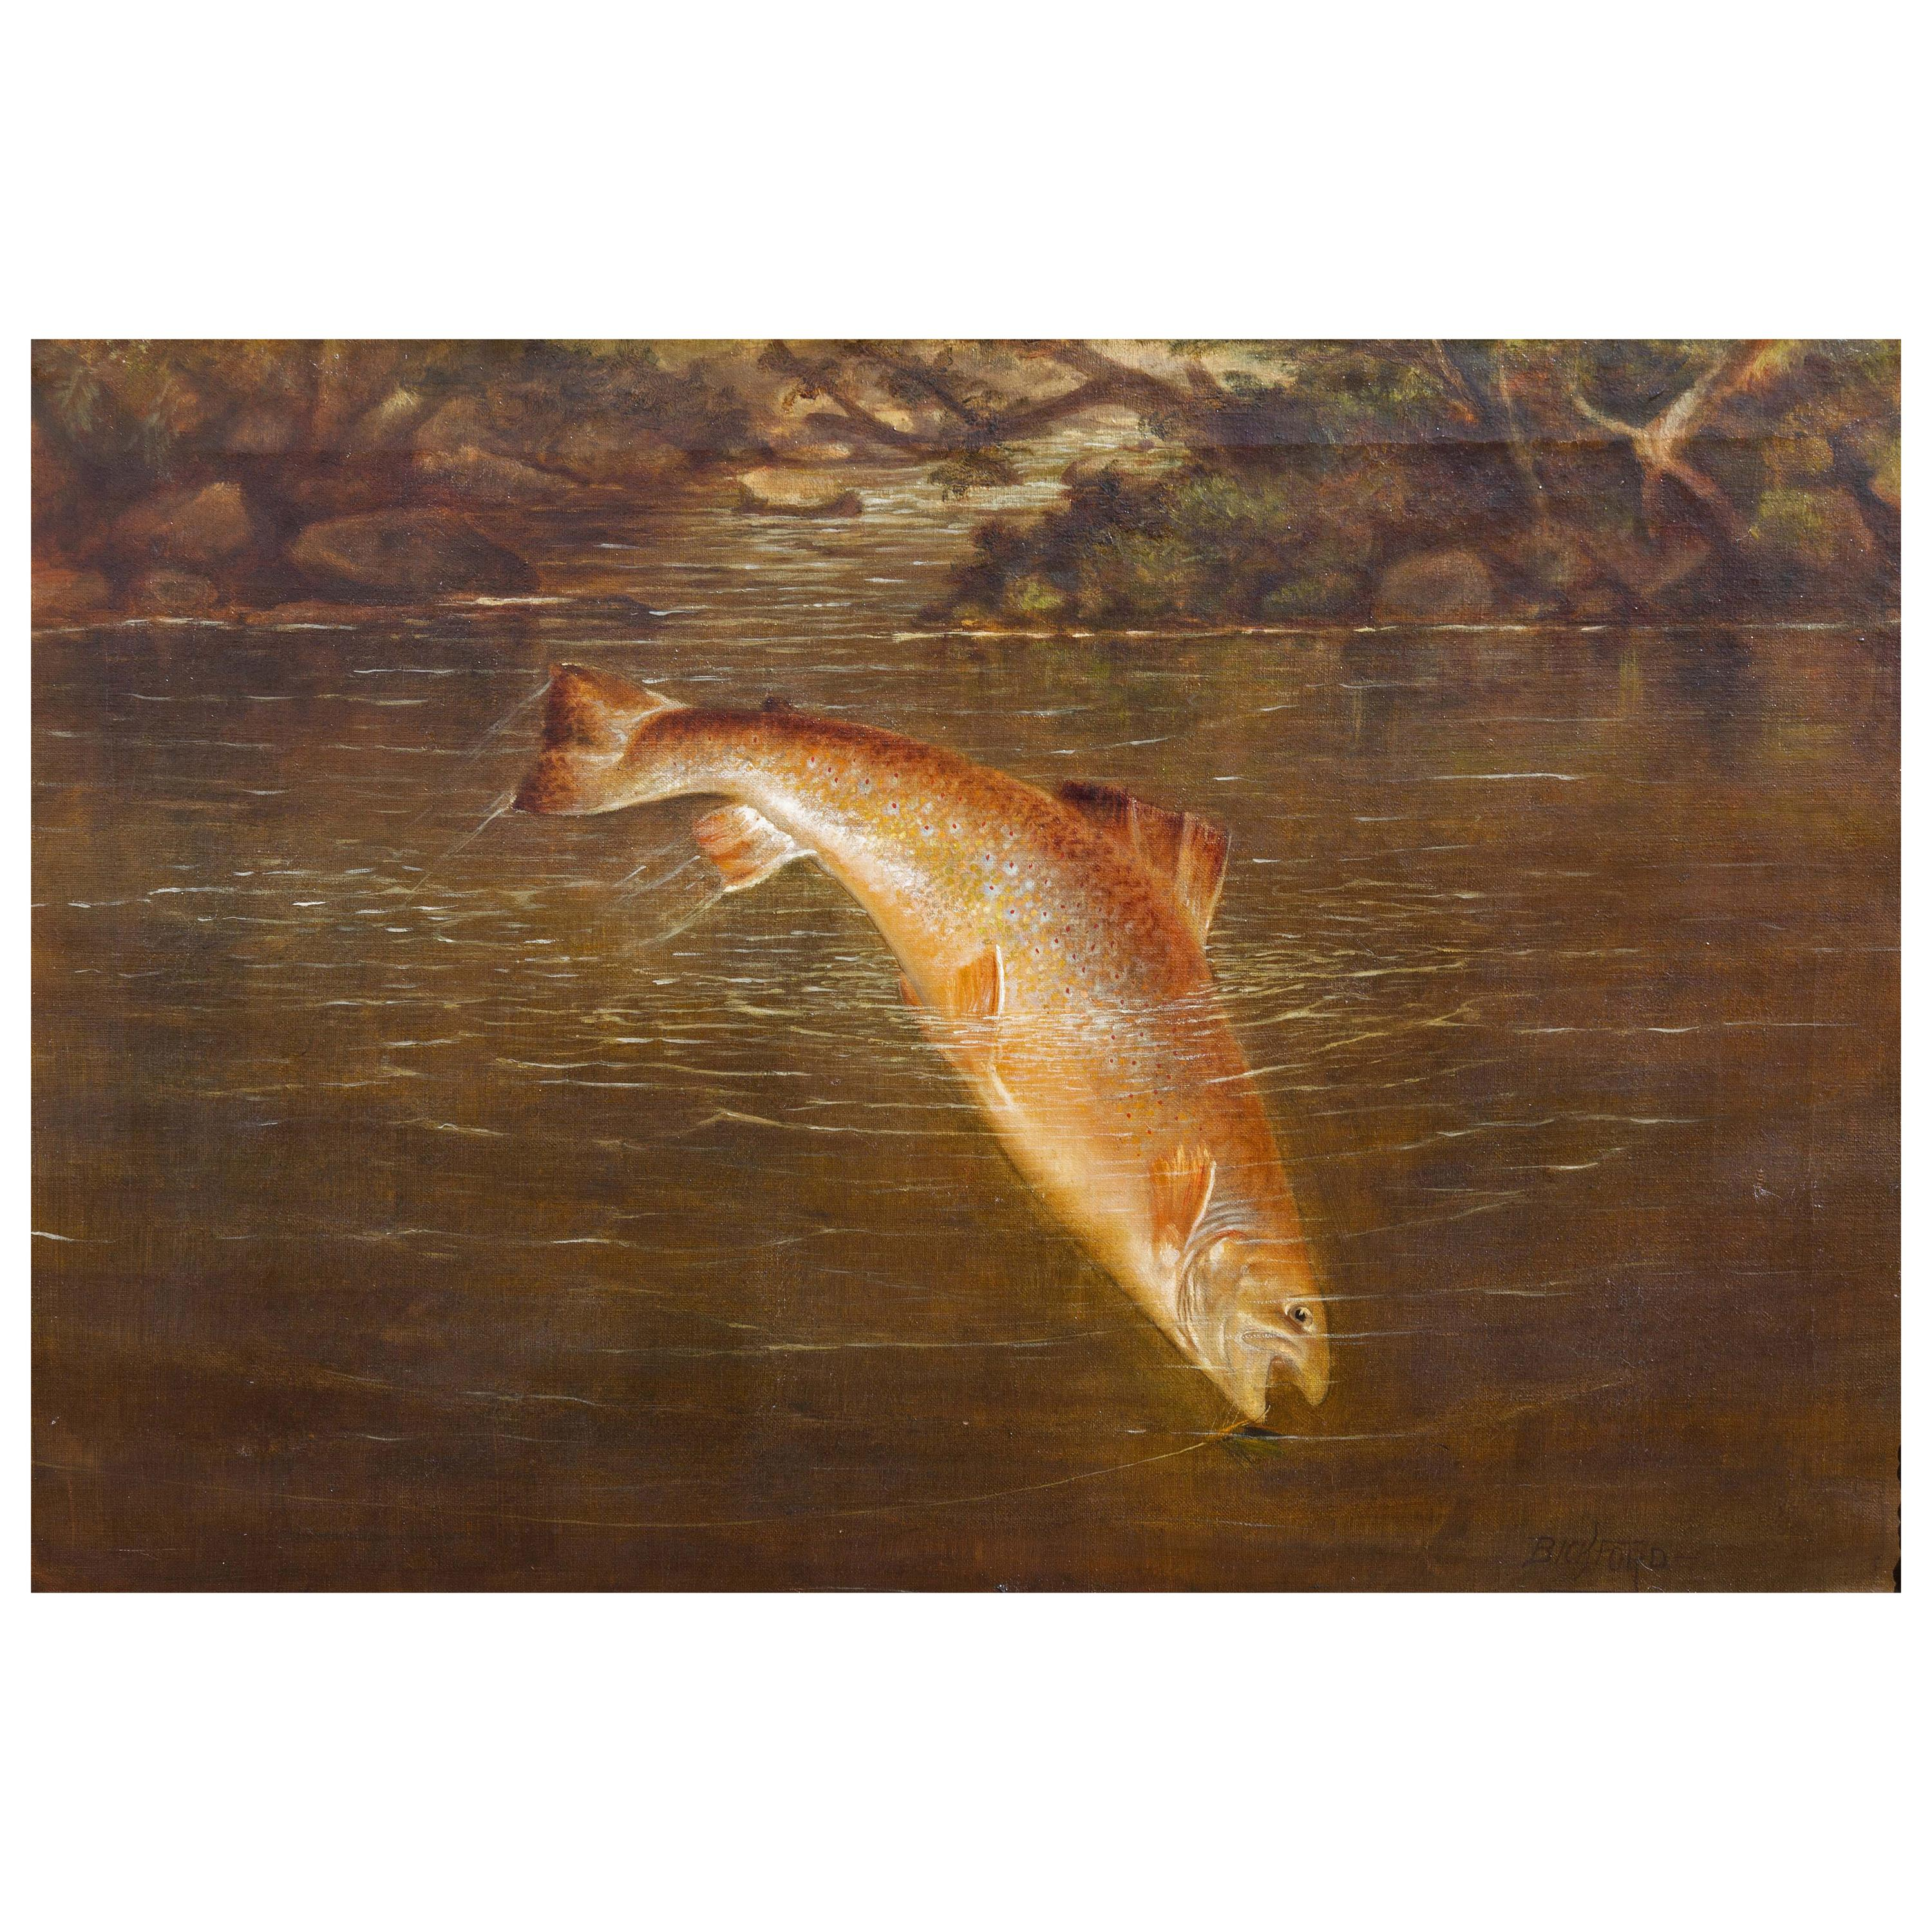 Sporting Painting Jumping Salmon Painting by Sid Bickford, 19th Century